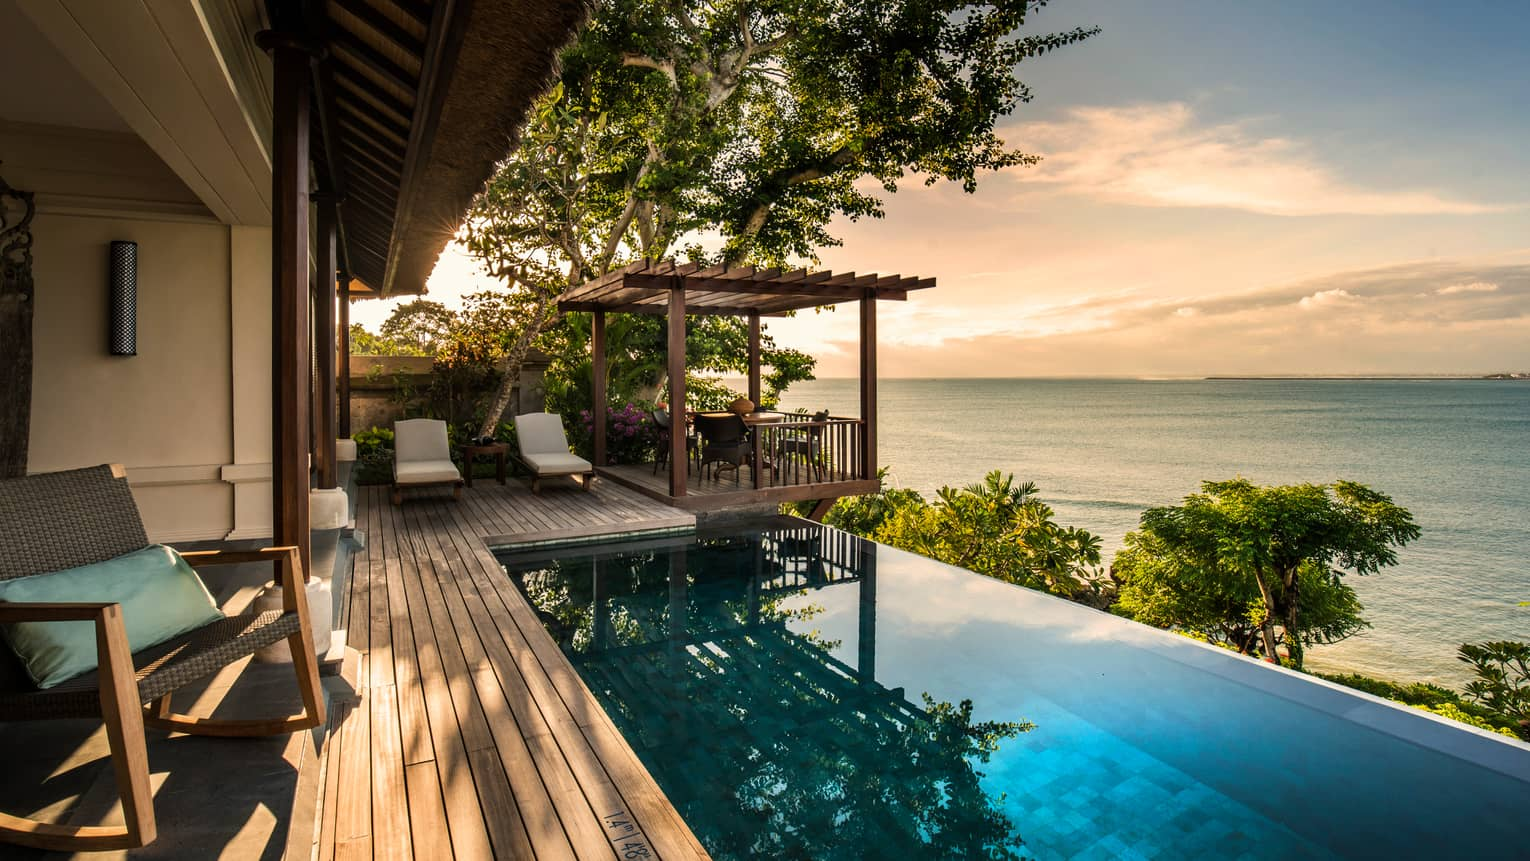 Private Ocean Villa patio at sunset with infinity swimming pool reflecting trees, clouds, white lounge chairs on side